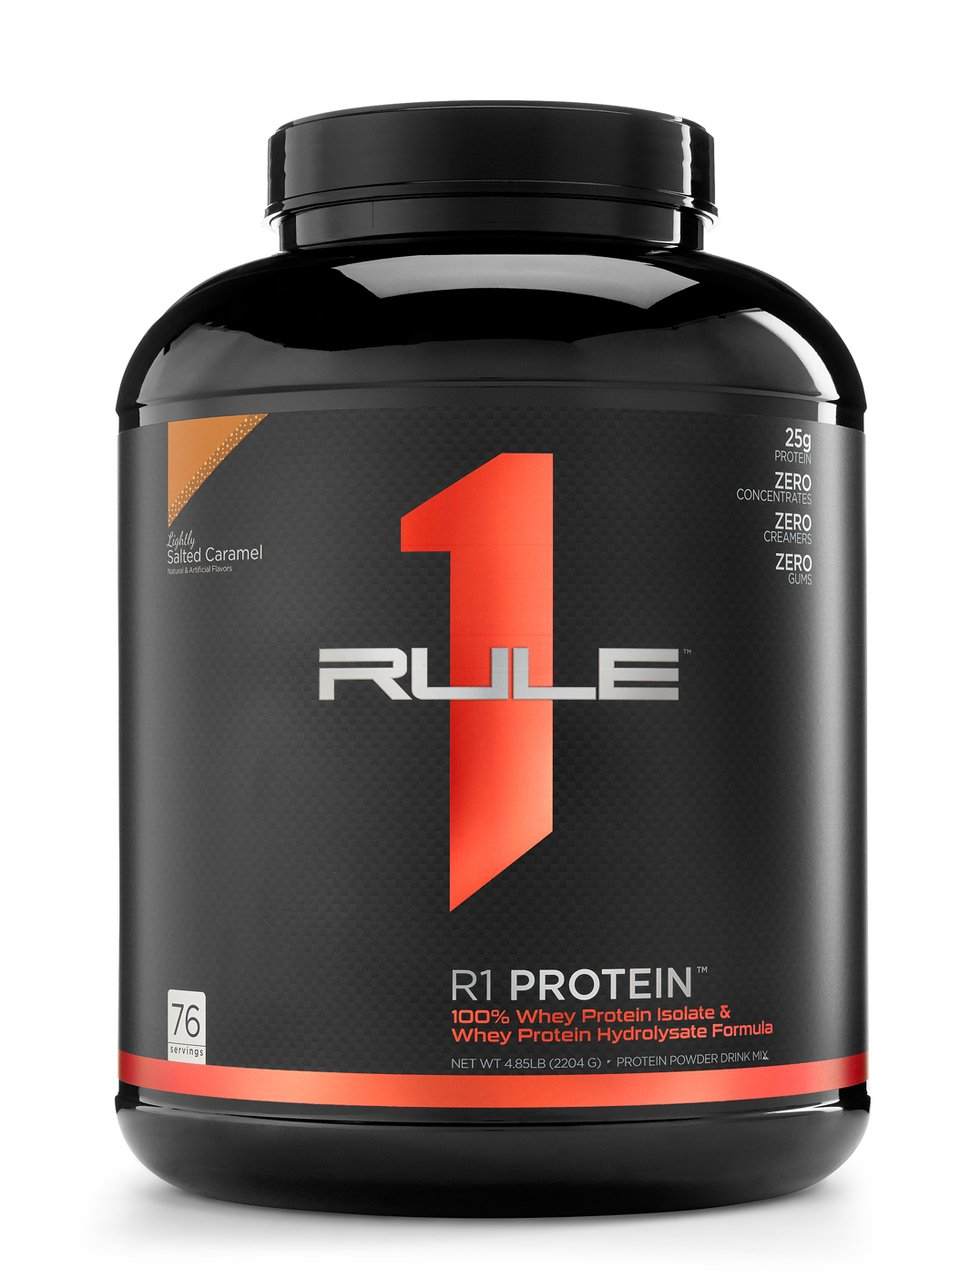 R1 Protein Whey Isolate/Hydrolysate, Rule 1 Proteins (76 Servings, Lightly Salted Caramel)